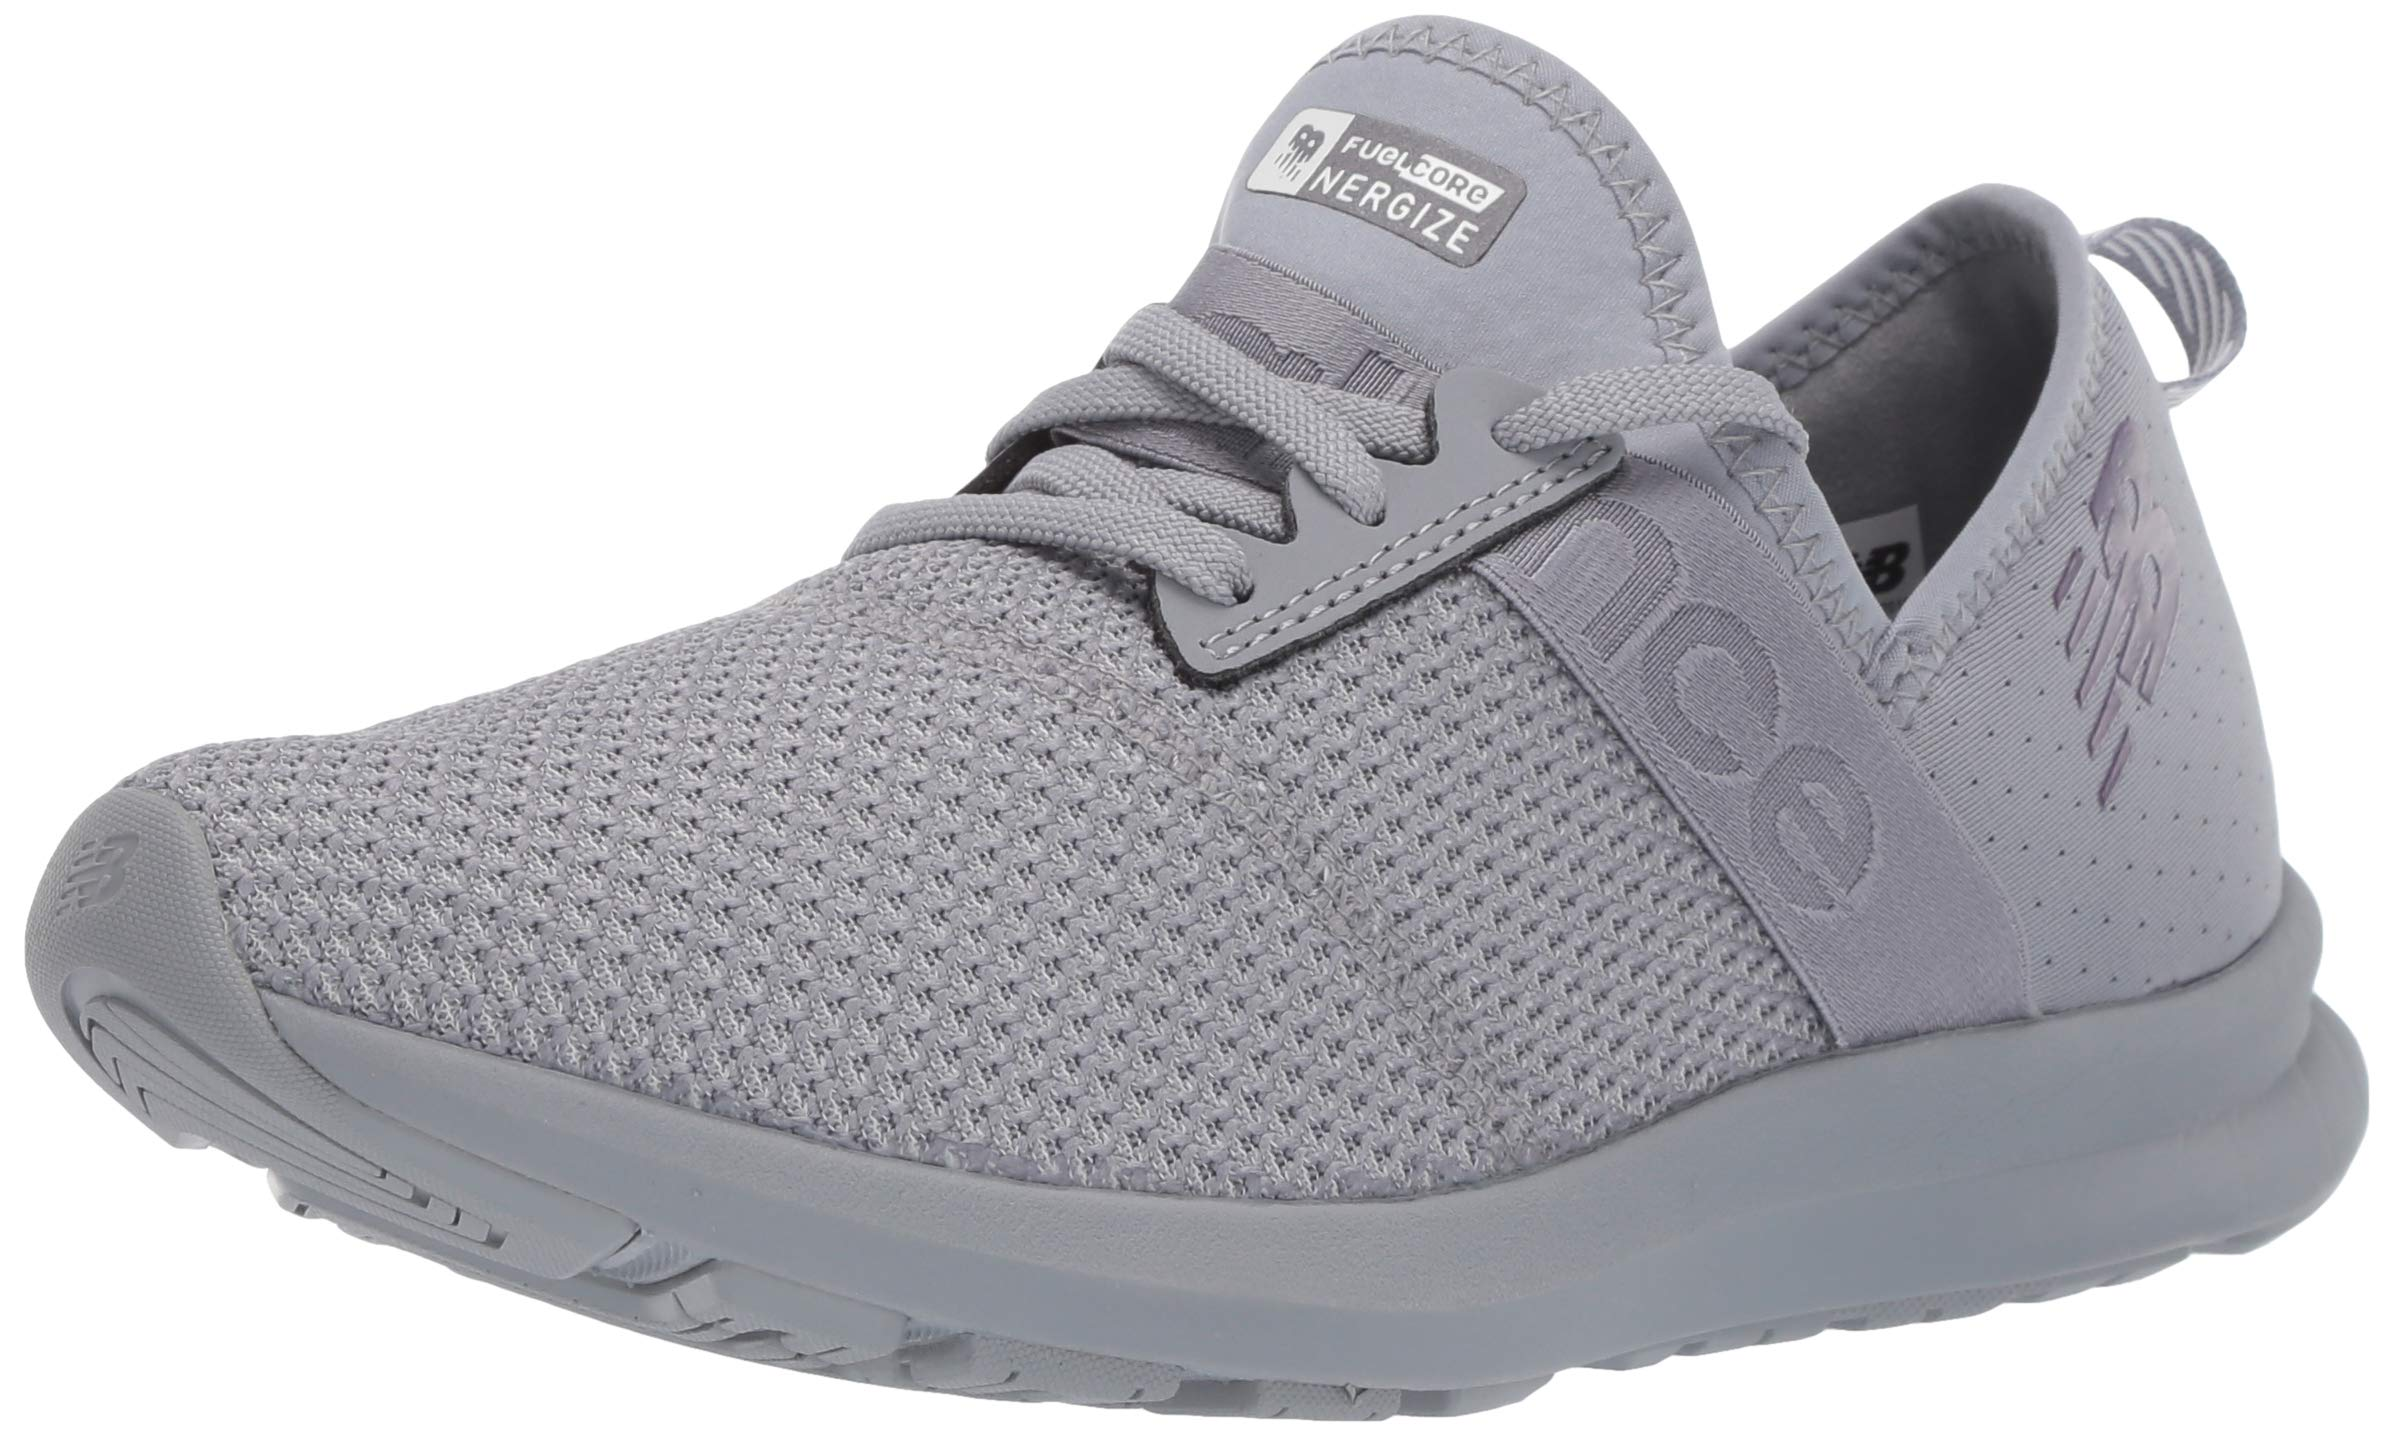 New Balance Women's Nergize V1 FuelCore Sneaker,STEEL,5 D US by New Balance